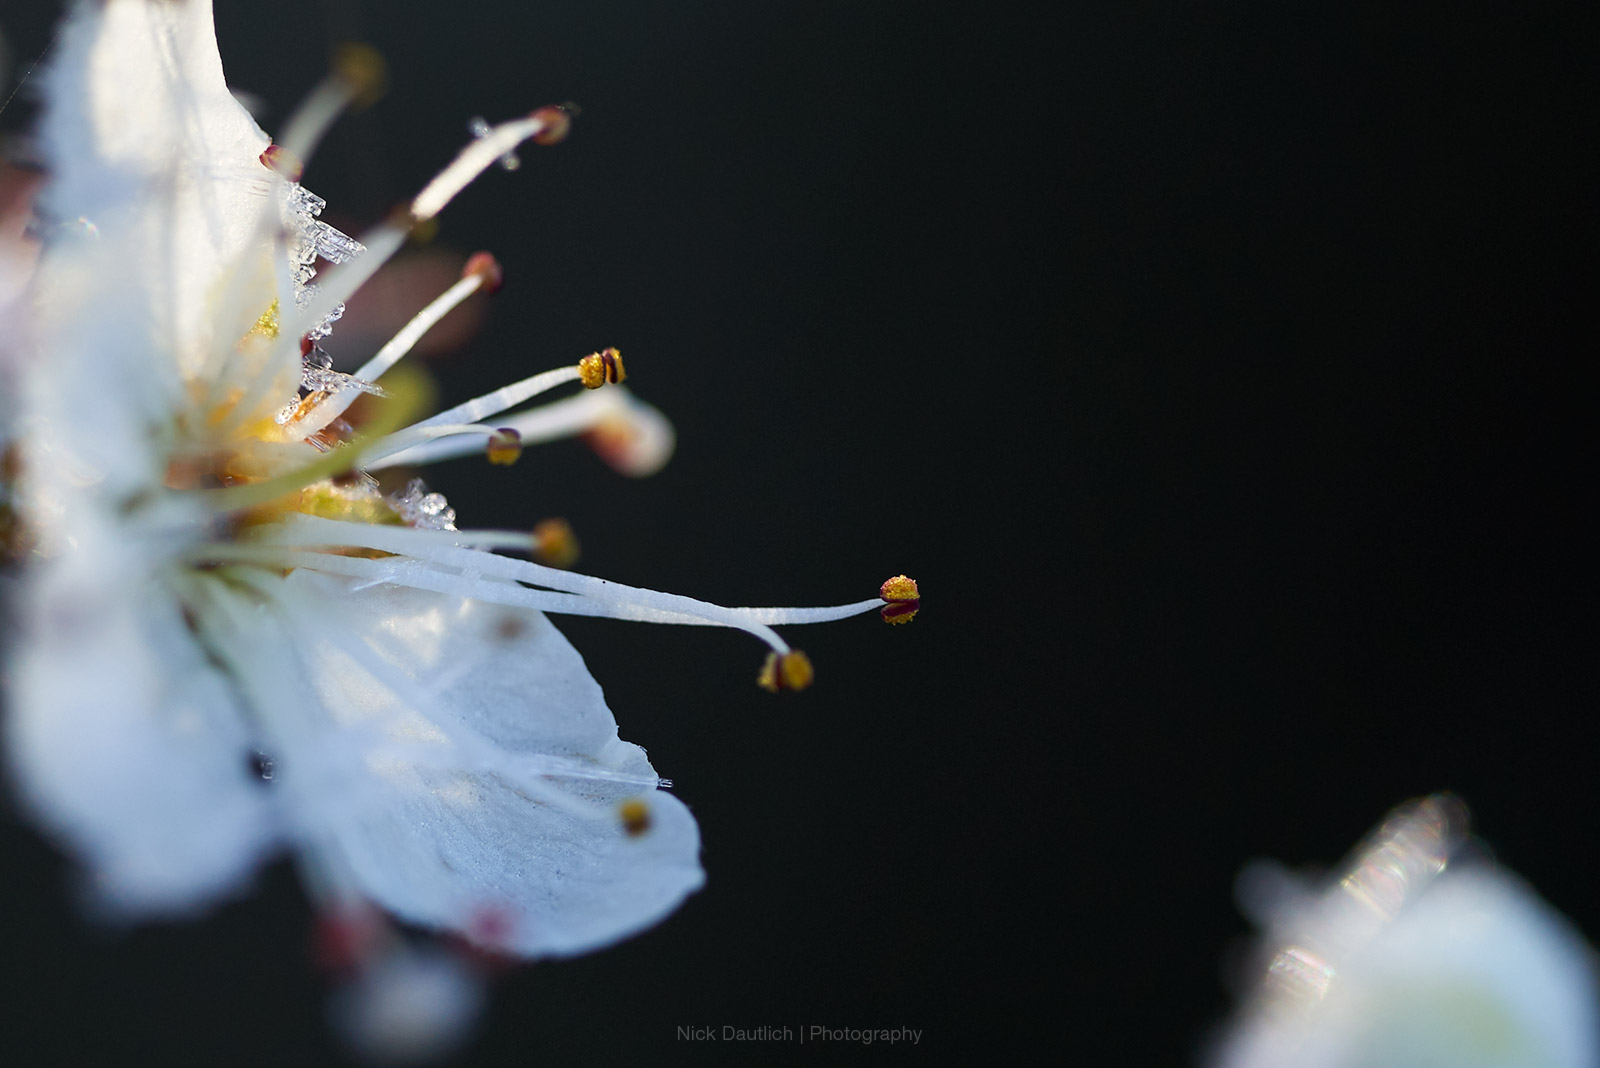 Extreme close-up macro of blossom